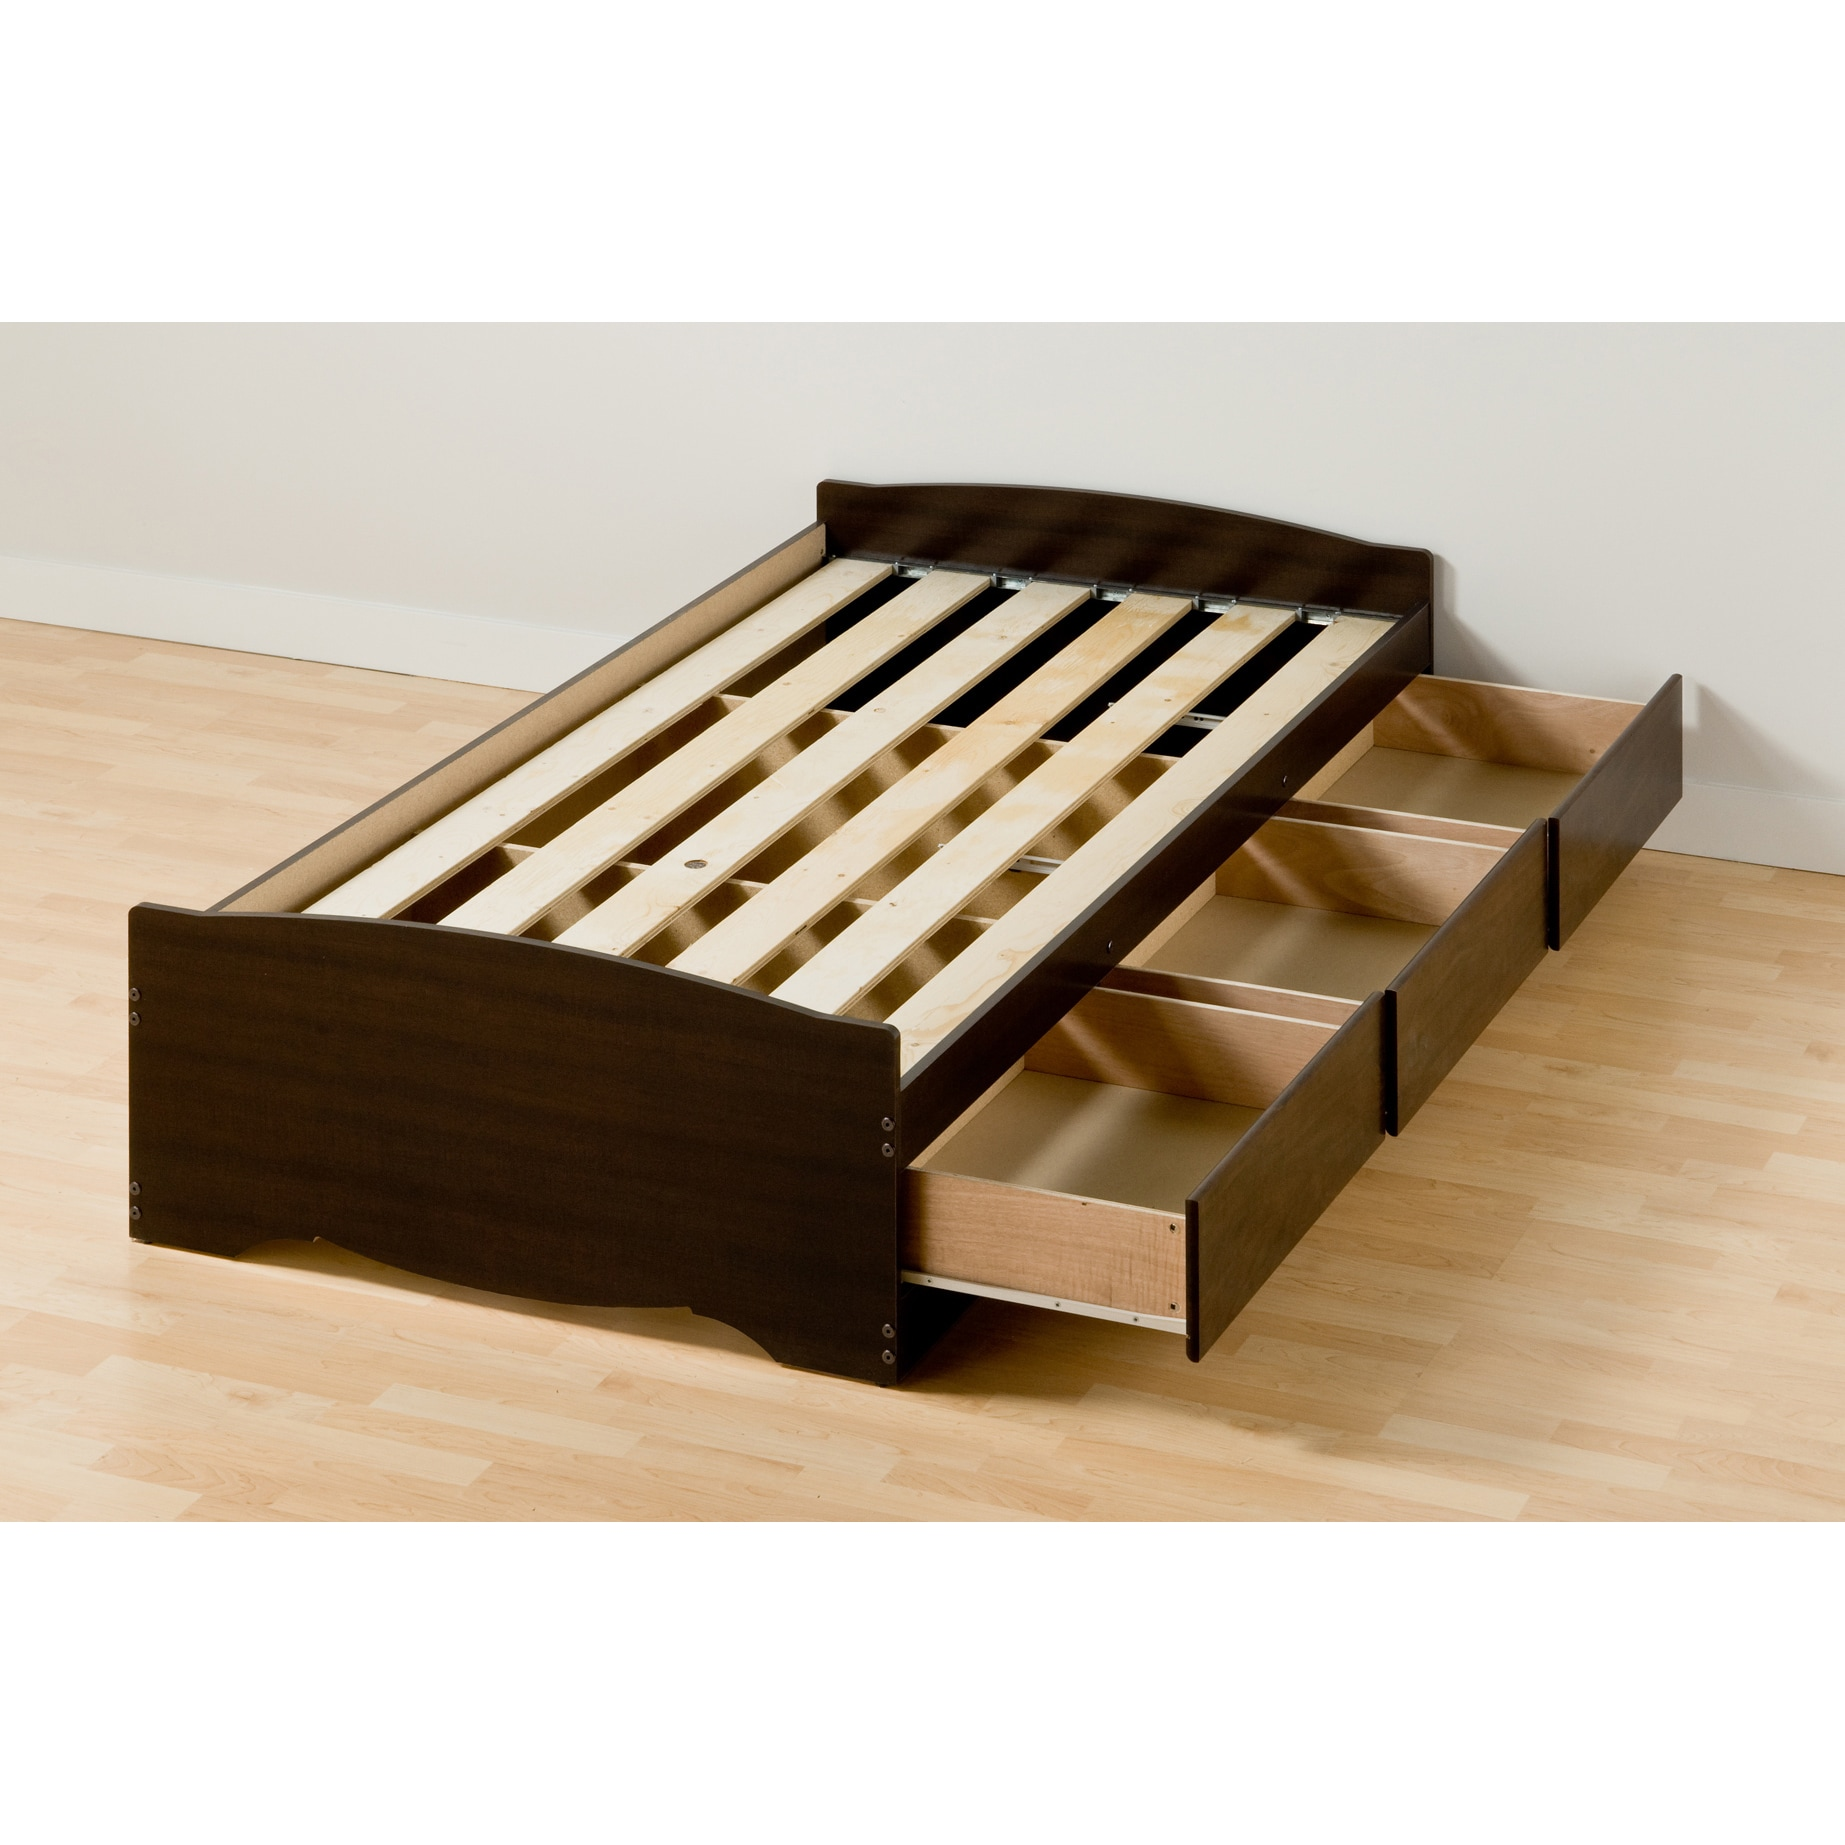 Shop Espresso Twin XL Mateu0027s Platform Storage Bed with 3 Drawers - Free Shipping Today - Overstock.com - 3072580  sc 1 st  Overstock.com & Shop Espresso Twin XL Mateu0027s Platform Storage Bed with 3 Drawers ...